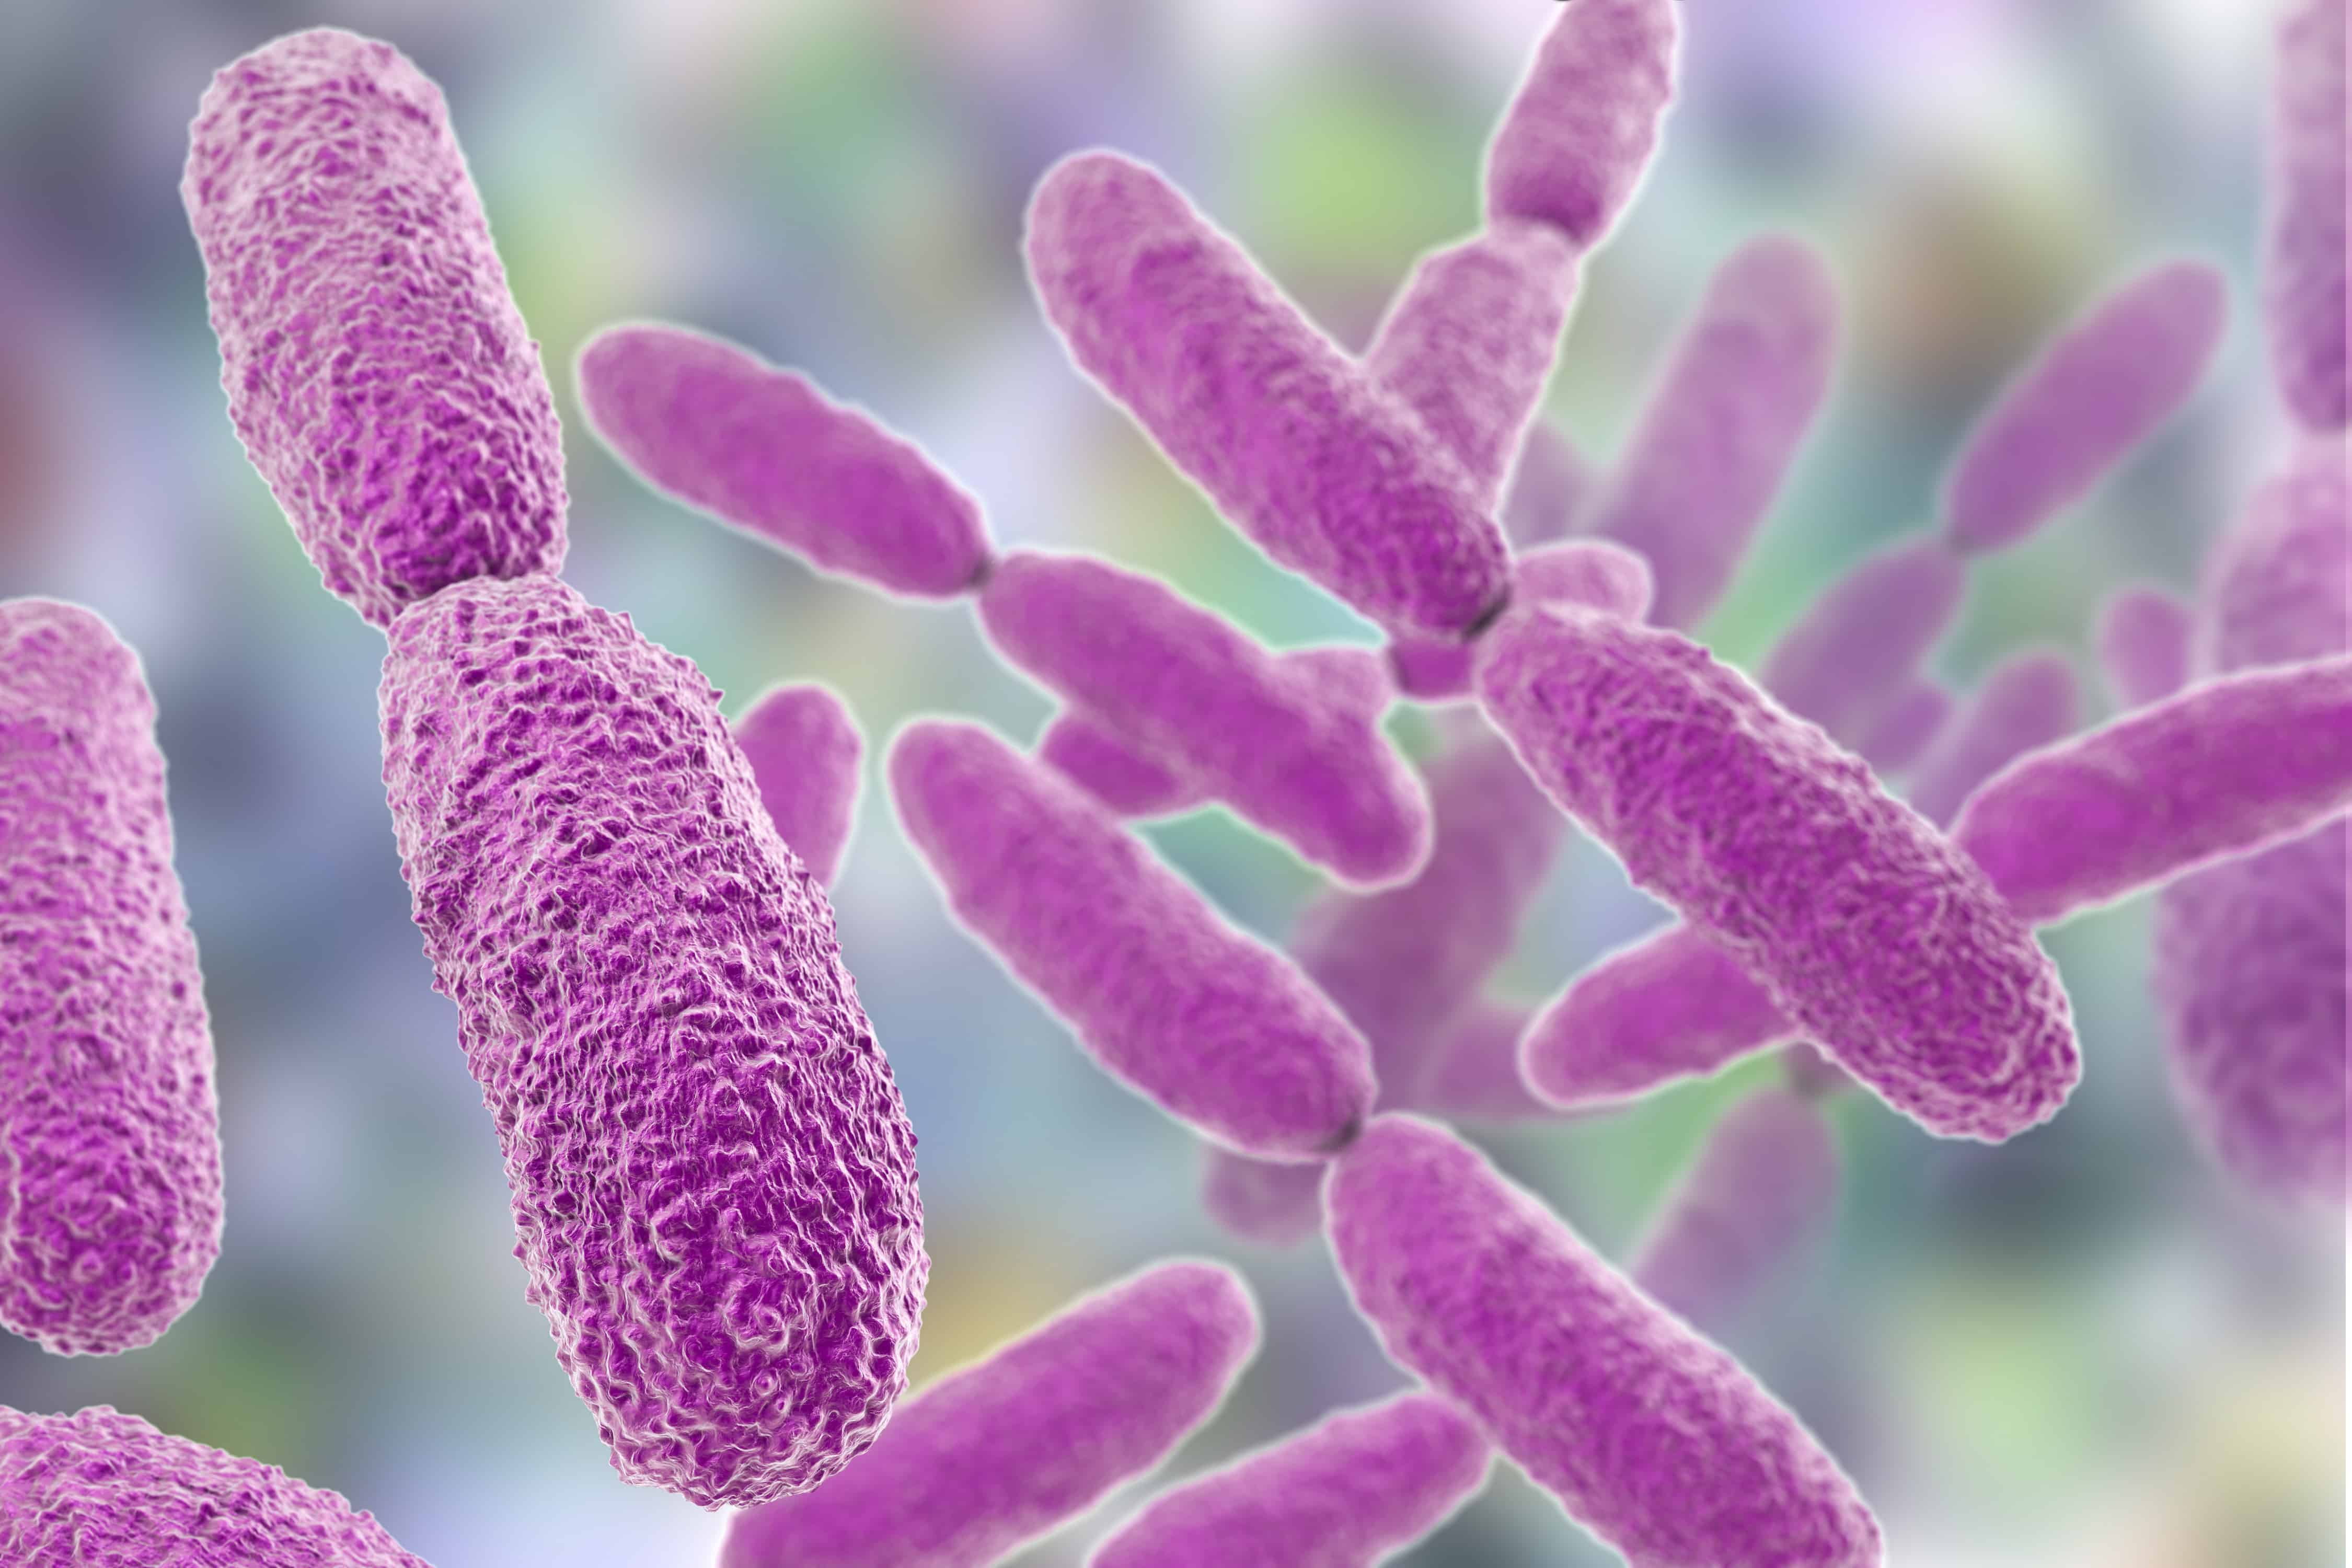 Weekly Digest: Multiple cases of colistin-resistant Klebsiella identified in Indian hospital; Wild poliovirus type 3 eradicated worldwide; New guideline recommends against using antibiotics for toothaches.